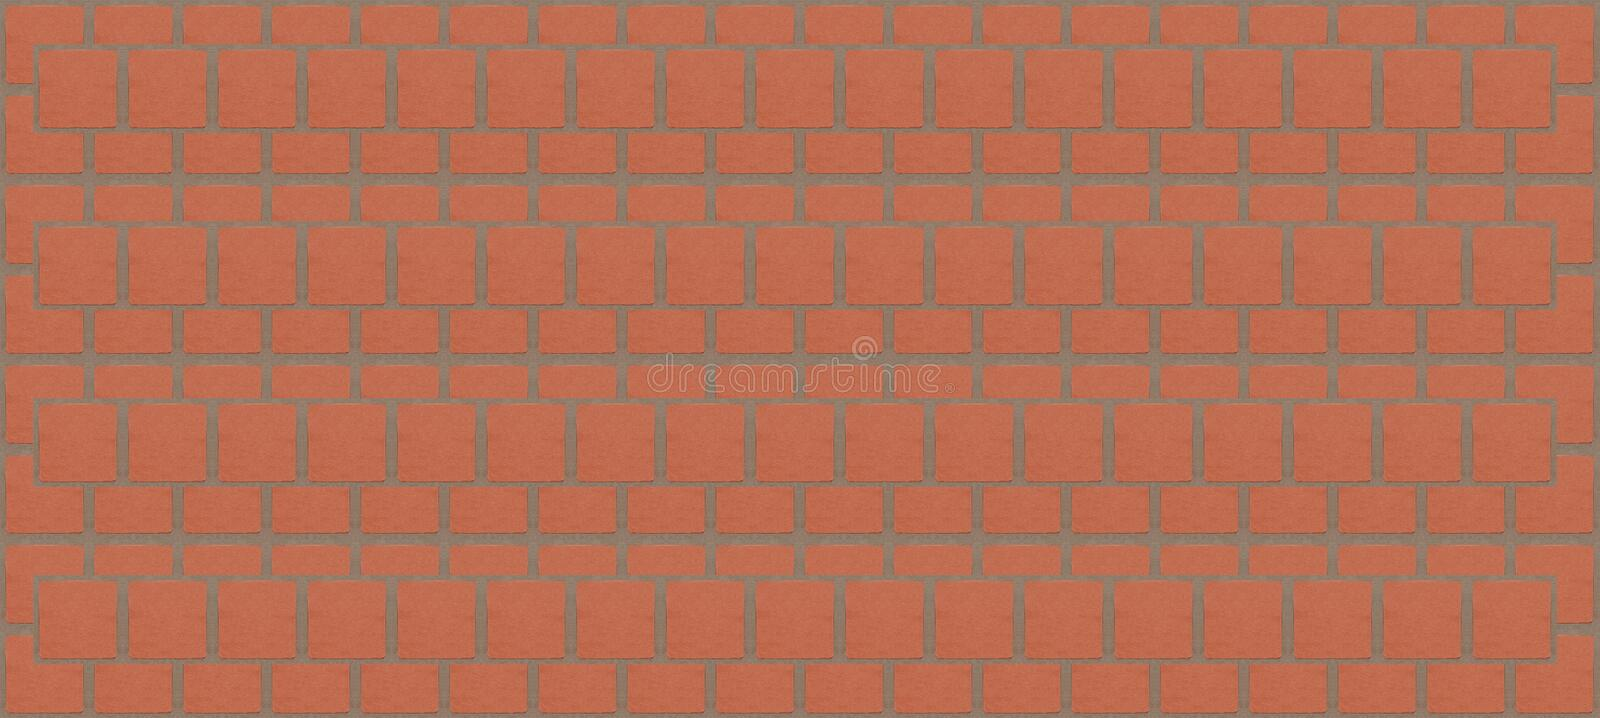 Background texture brick wall pattern realistic square blocks with cement endless row royalty free stock photos